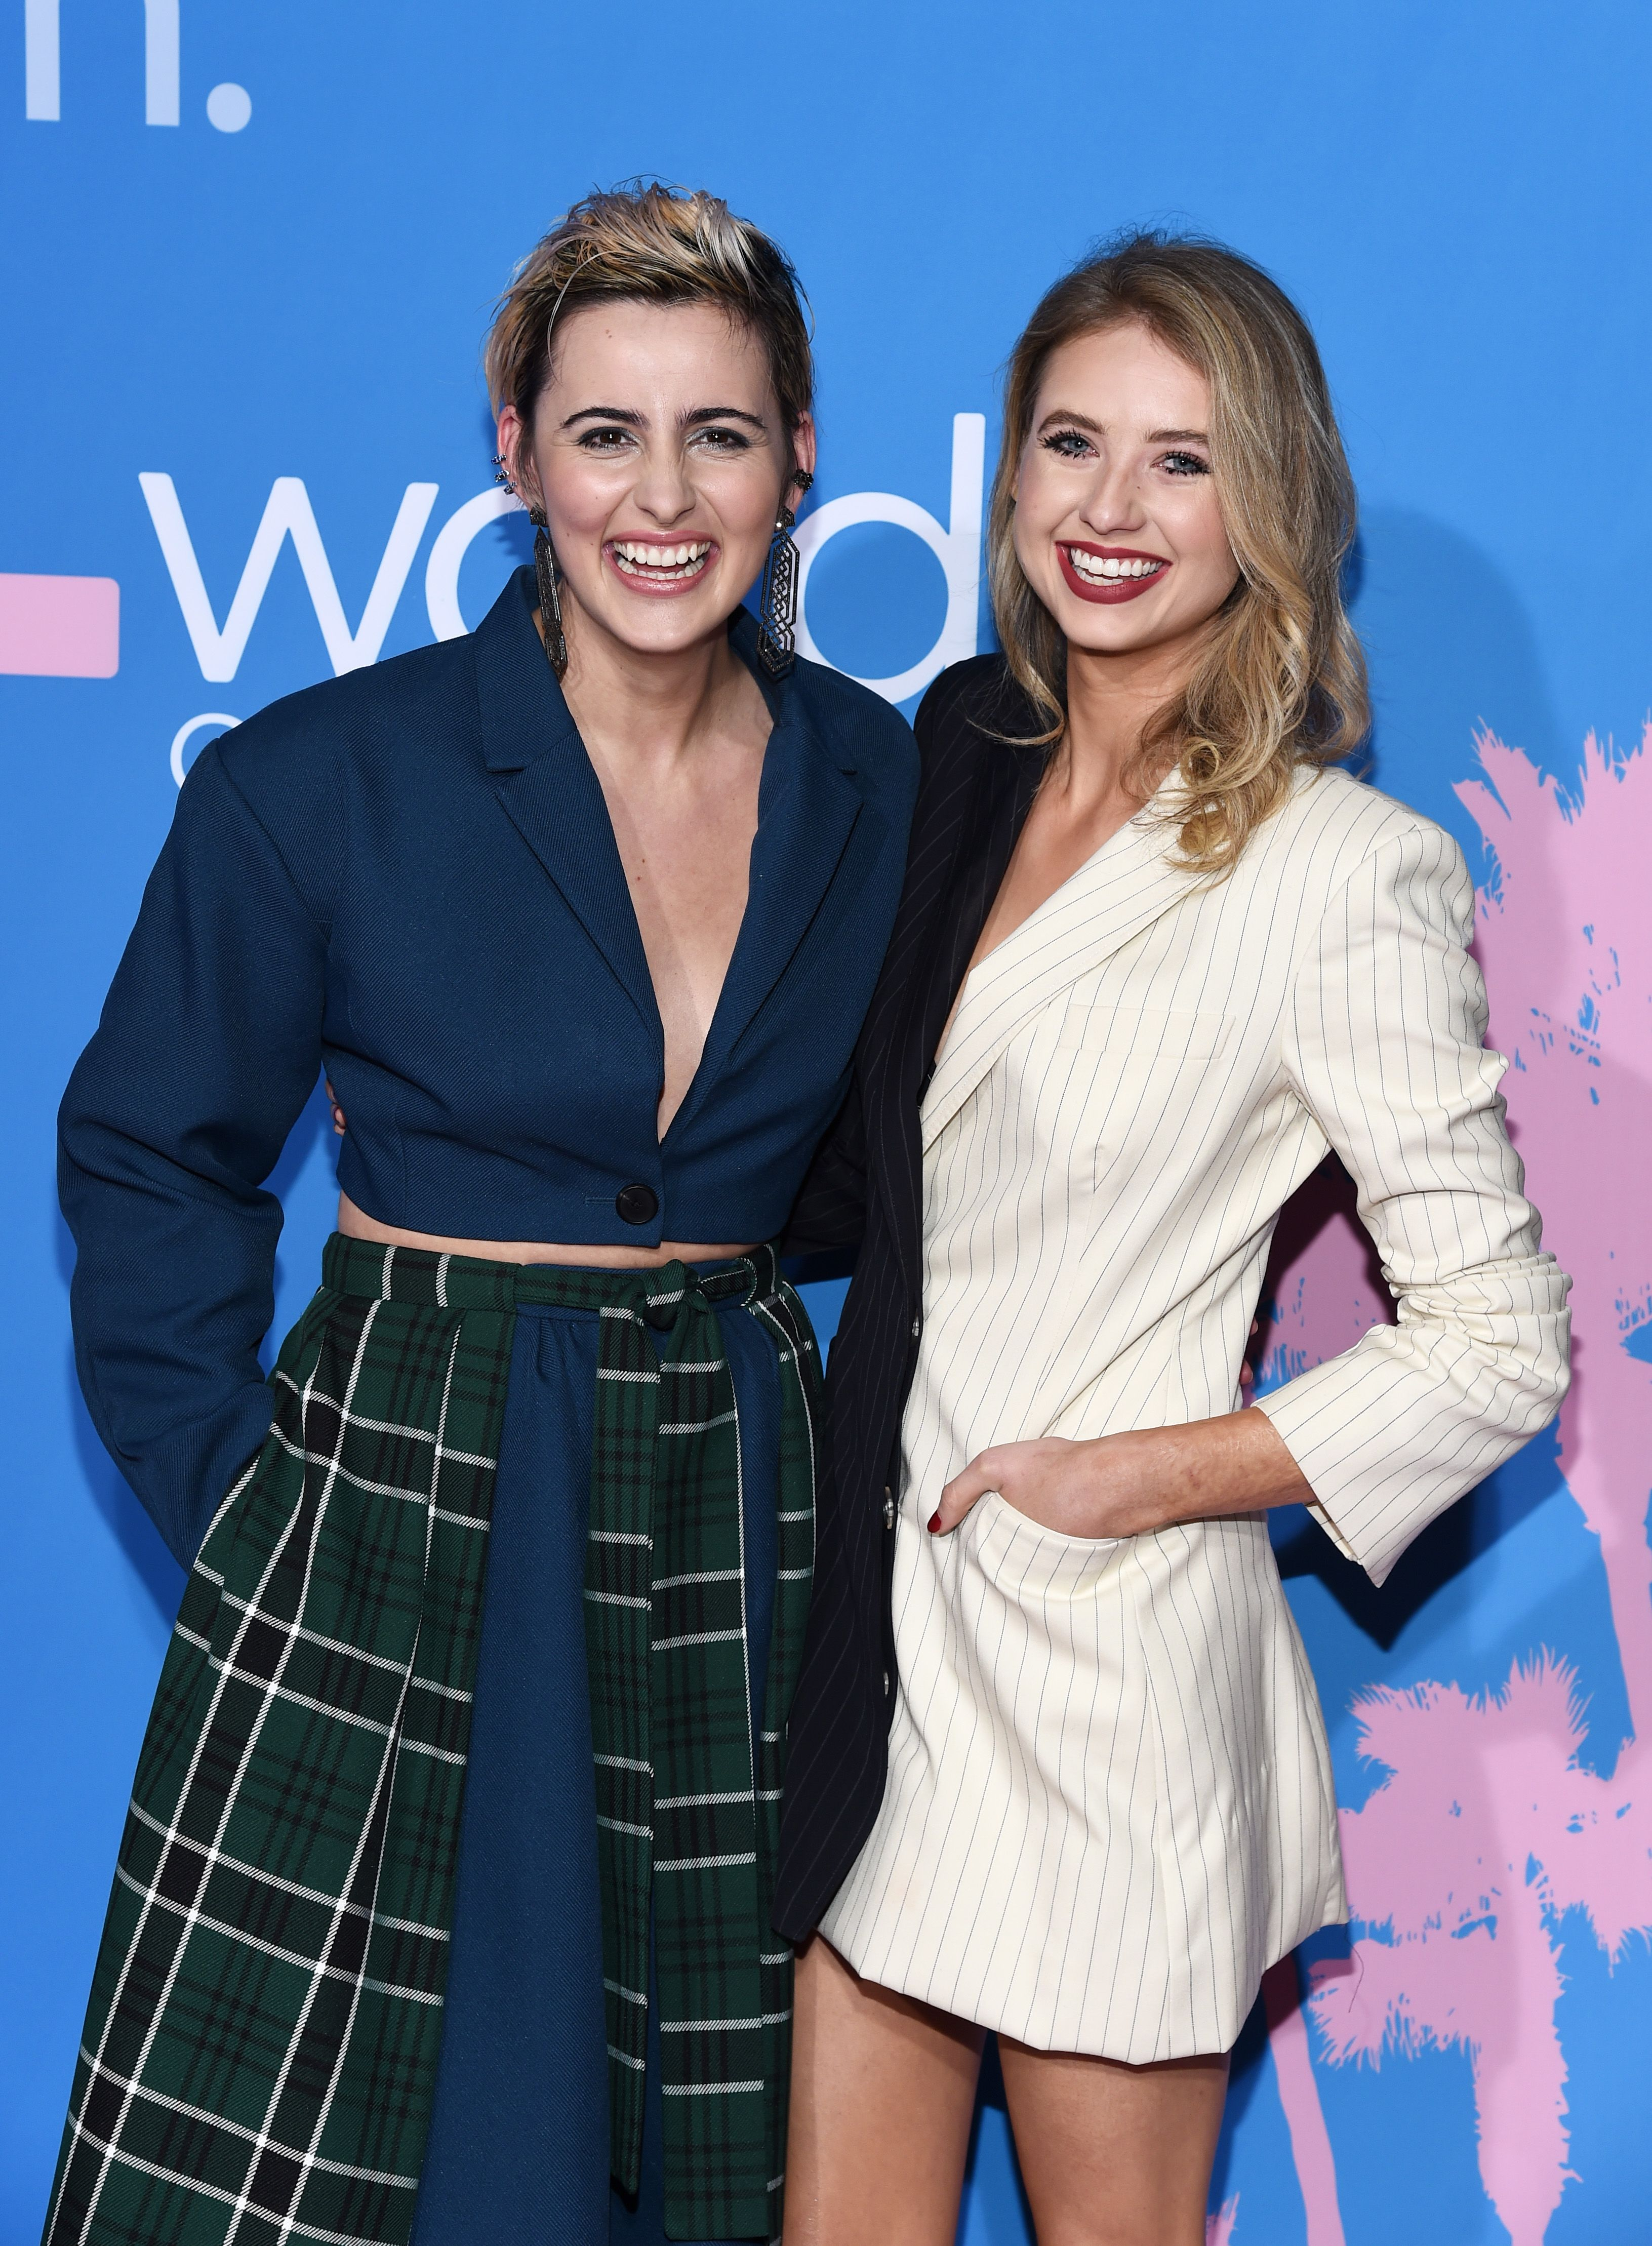 """Jacqueline Toboniand Kassandra Clementi at the premiere of""""The L Word: Generation Q""""on December 2, 2019, in Los Angeles, California   Photo:Amanda Edwards/WireImage/Getty Images"""